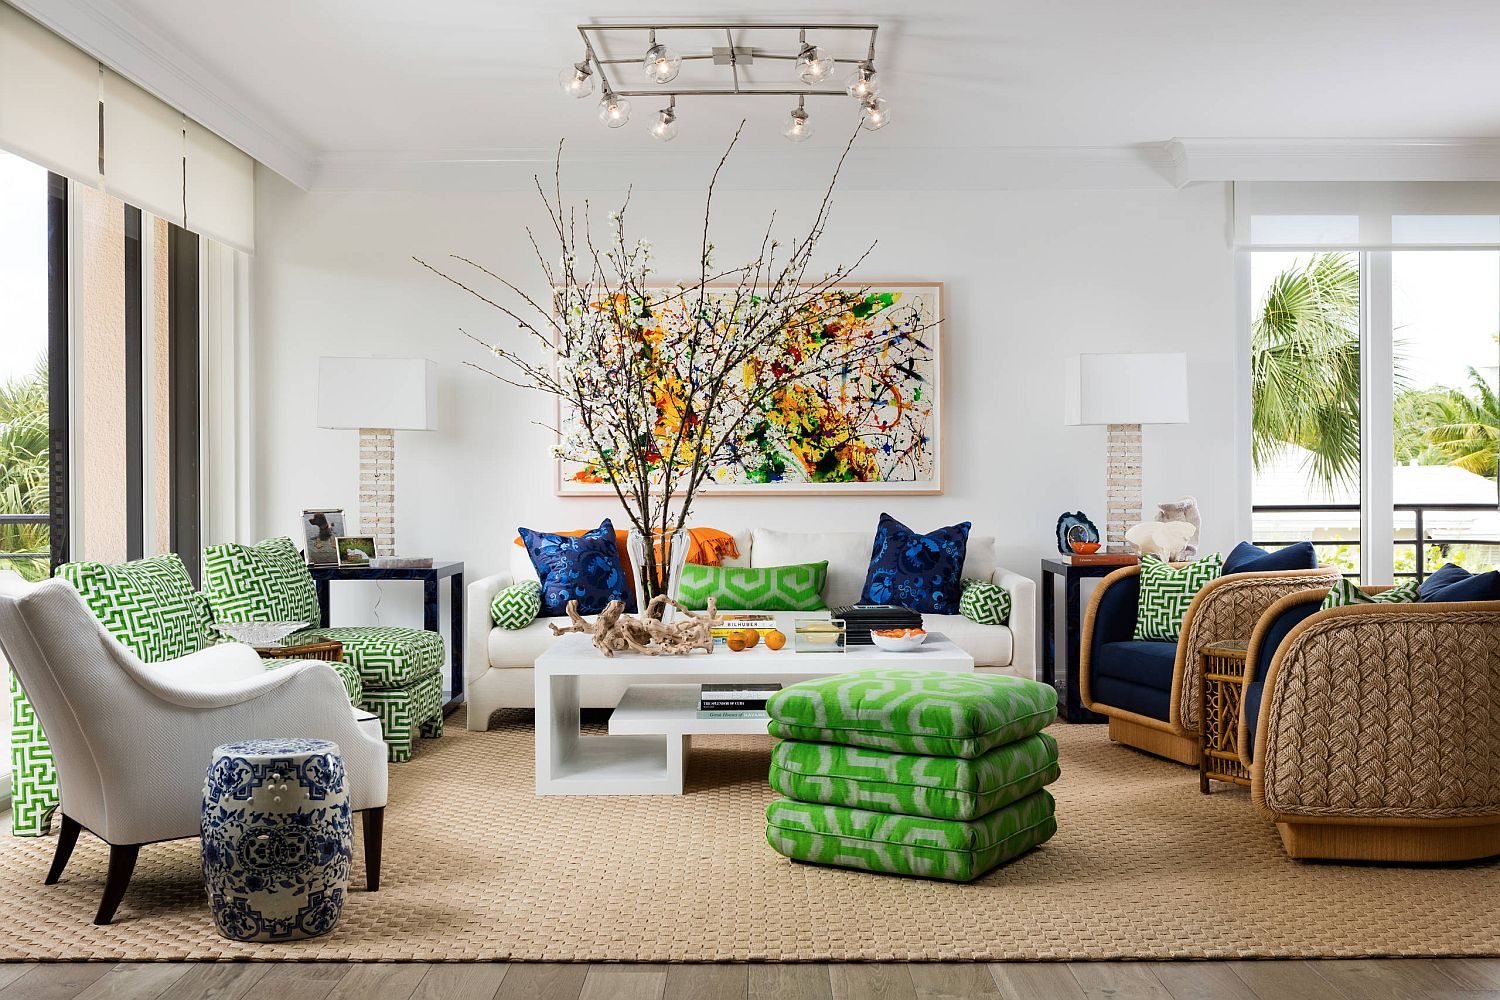 Bright pops of blue and green enliven this tropical style living room in white